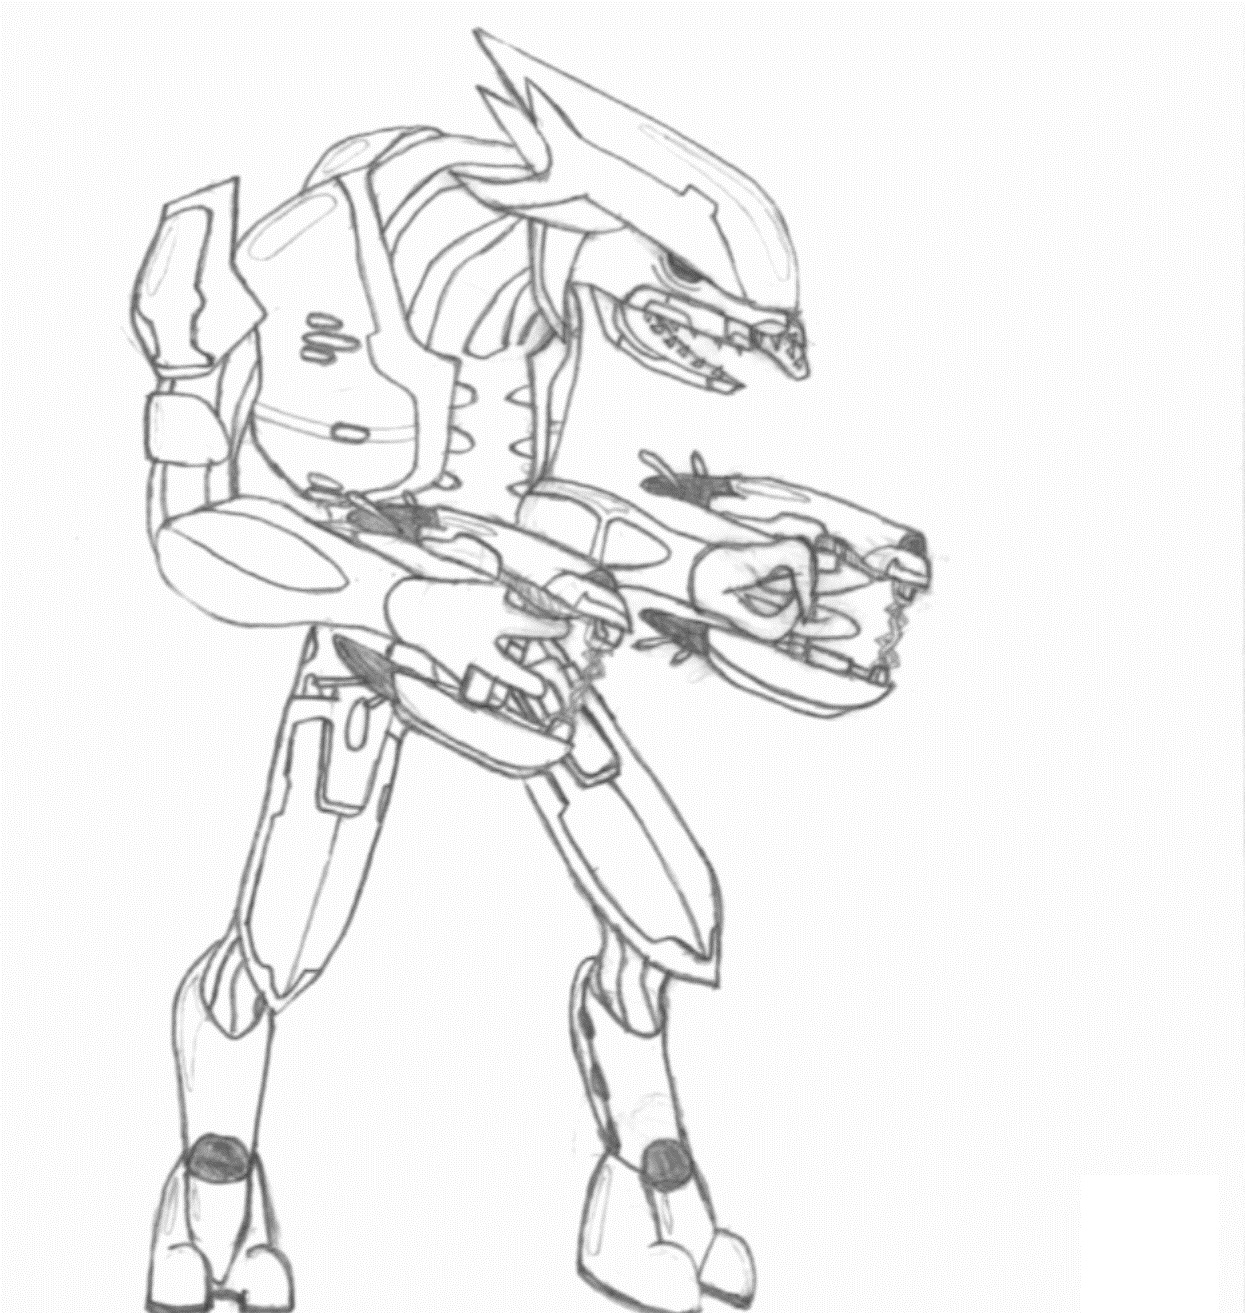 Halo Coloring Sheets halo 5 free coloring pages printable Halo ... | 1313x1245